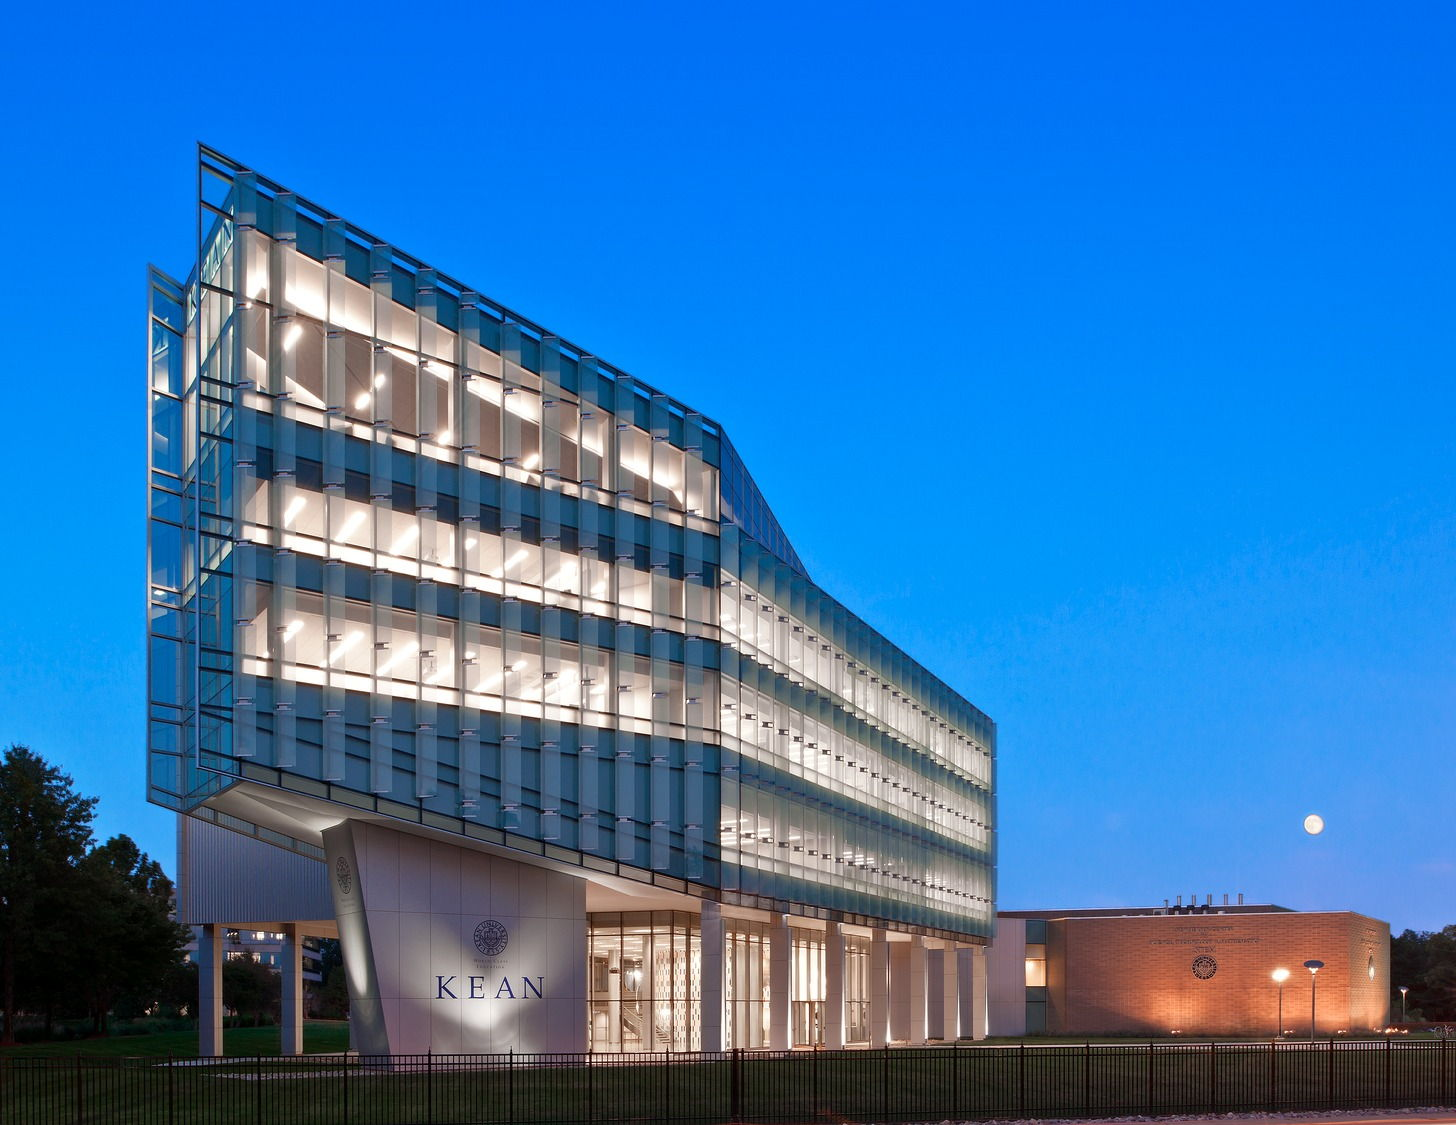 Kean University, New Jersey Center for Science, Technology & Mathematics Education